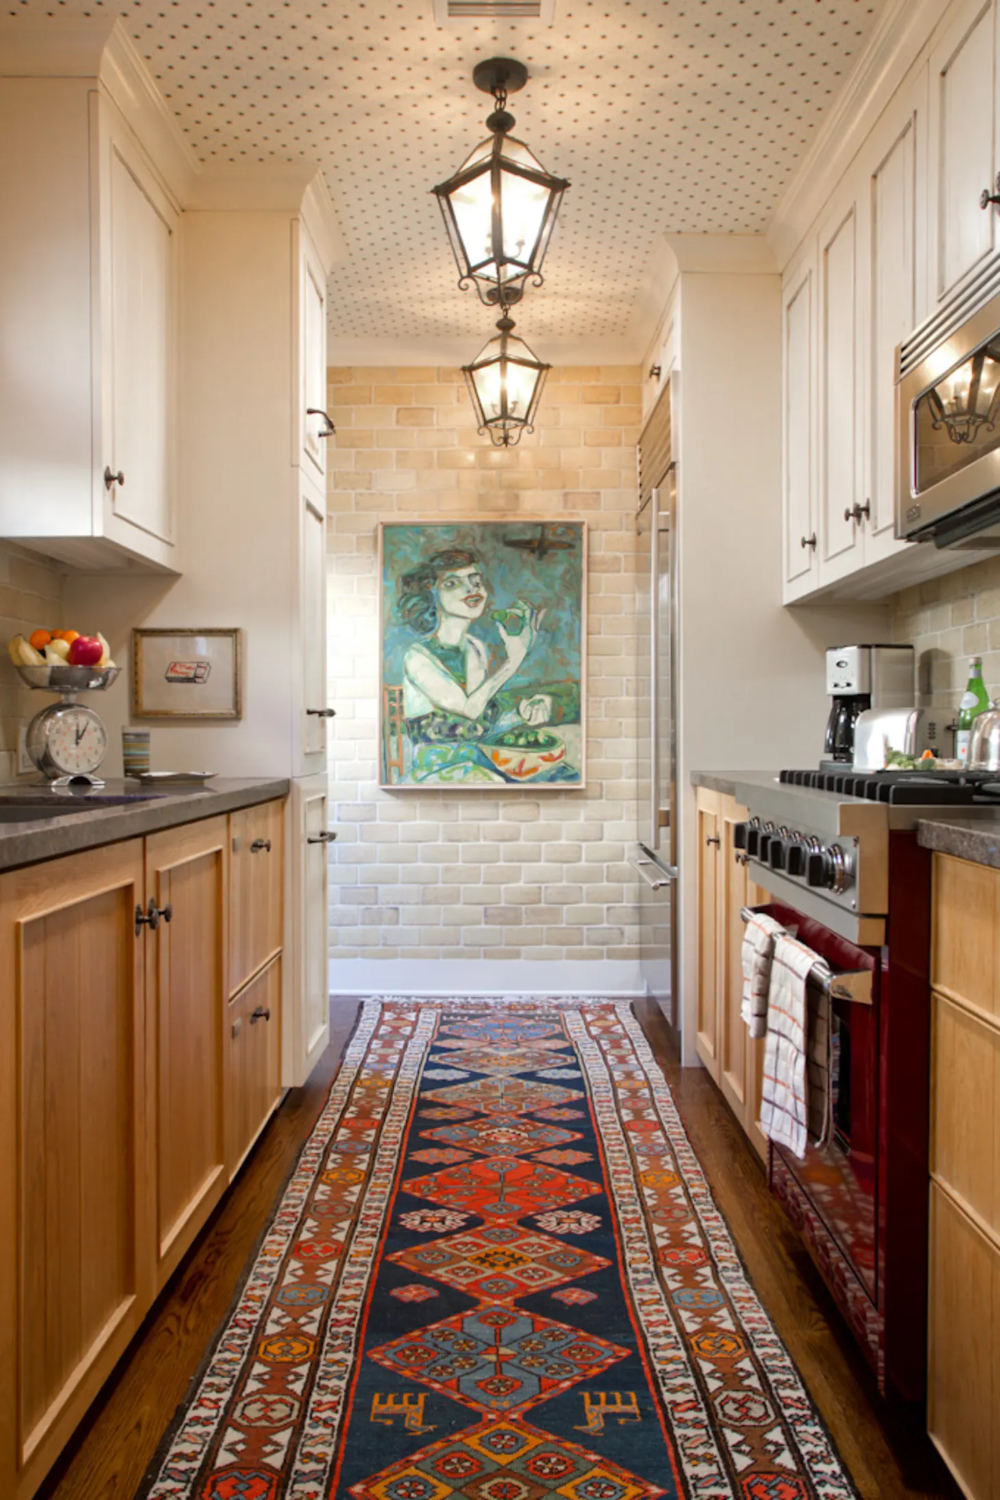 24 Stunning Examples That Show How to Make a Galley Kitchen Work